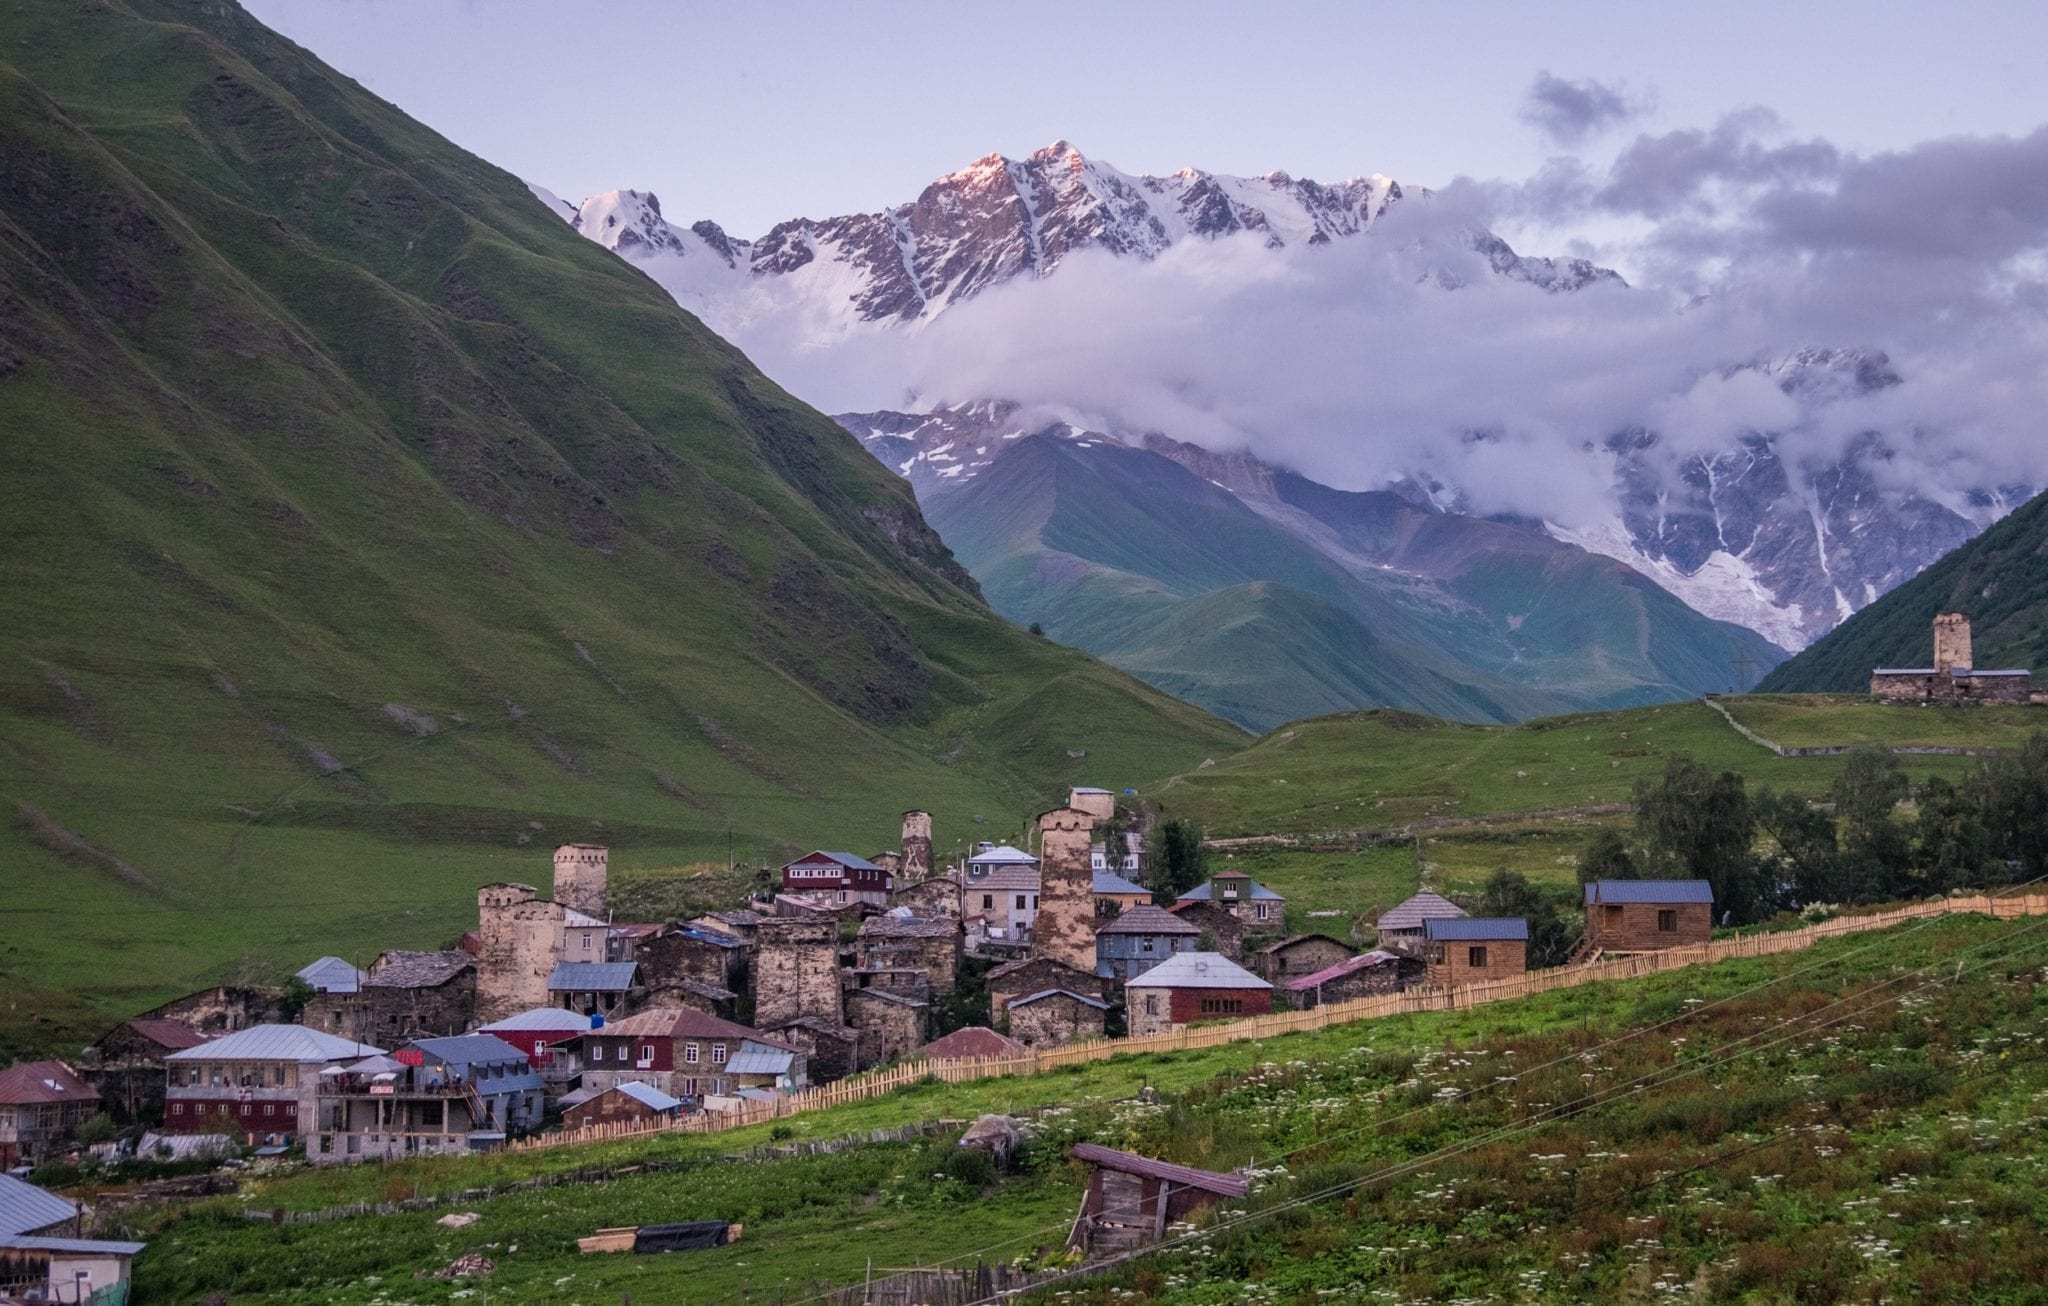 At dusk, the village of Ushguli looking purple in the evening light, surrounded by hills, purple mountains covered by clouds in the background.